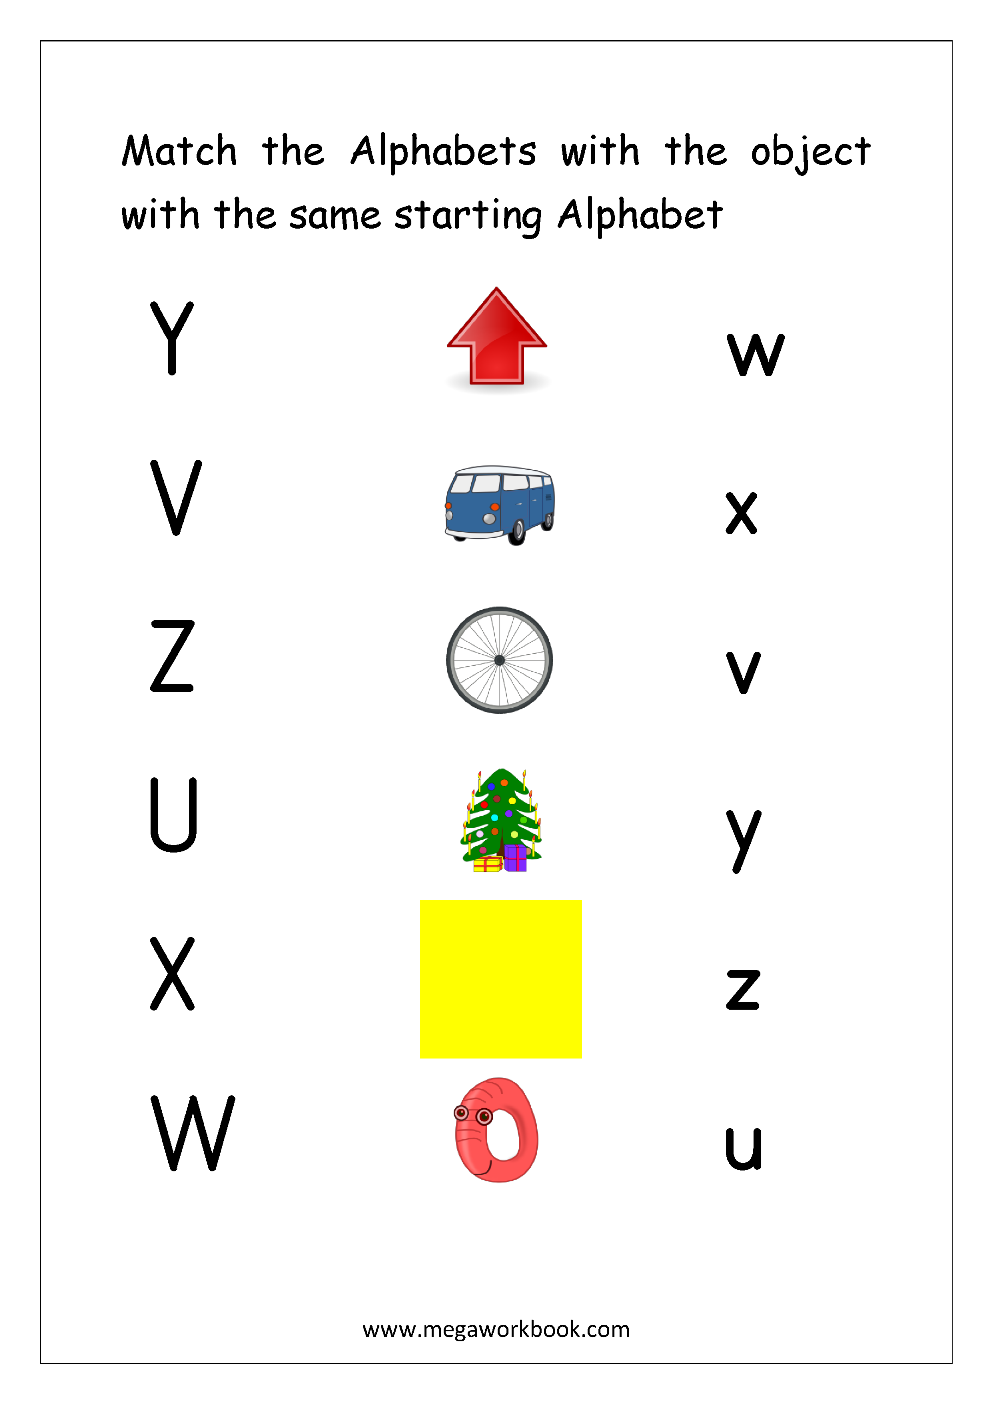 Which Geometric Spaces  es Next Worksheets For Preschool Kids besides Preschool Letter Worksheet H as well Find Trace Color Count Shapes Rectangle furthermore Geometric Shapes Worksheets For Preschool Kids together with Model Fraction. on tracing shapes worksheets